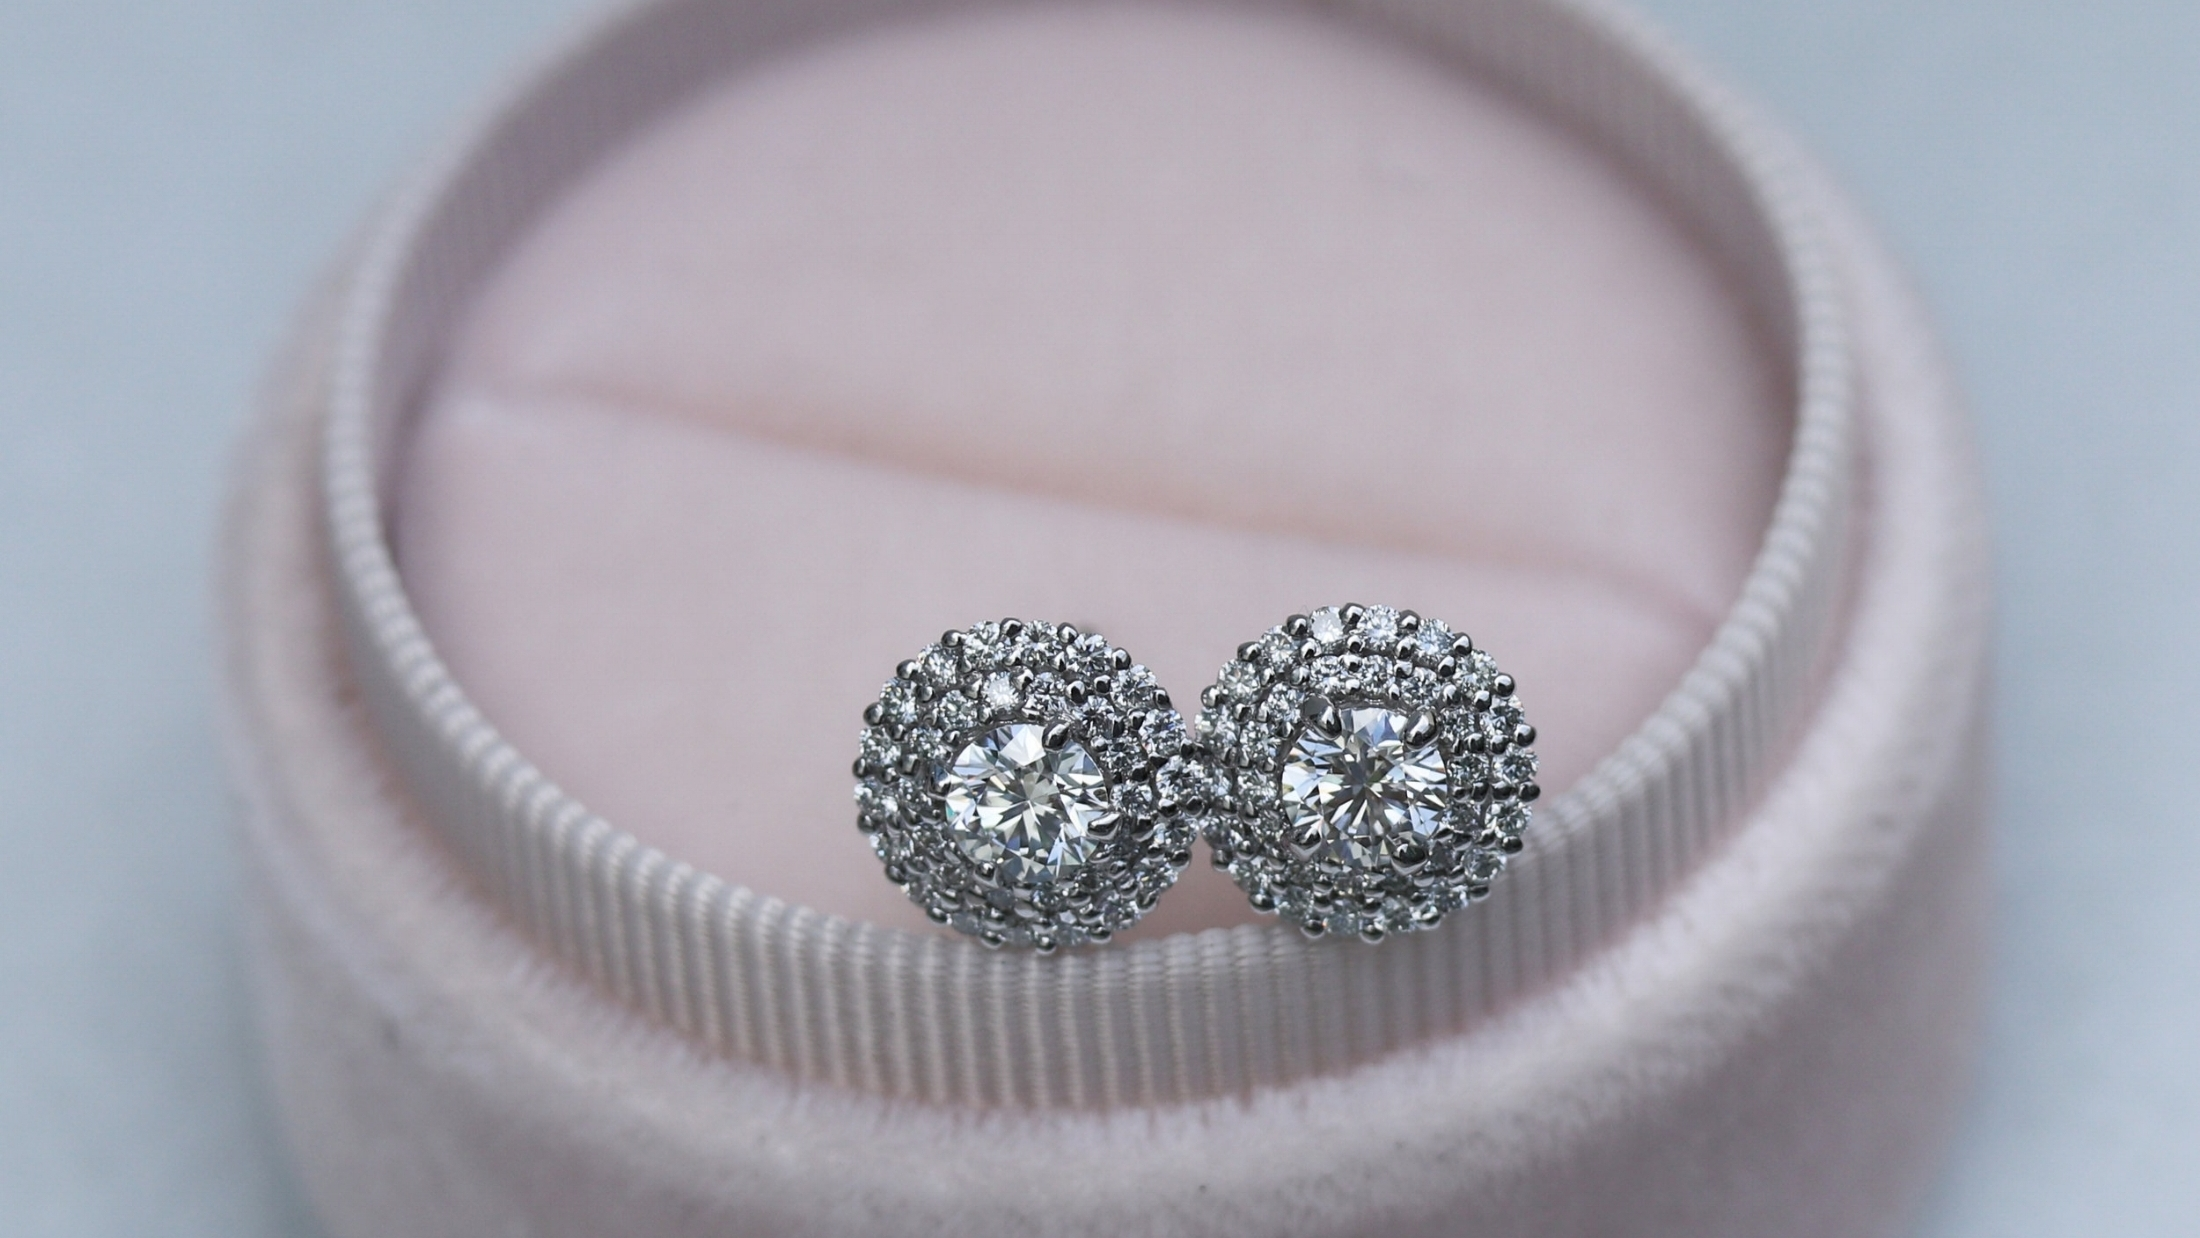 Lab grown double halo diamond stud earrings in white gold by Ada Diamonds AD-203